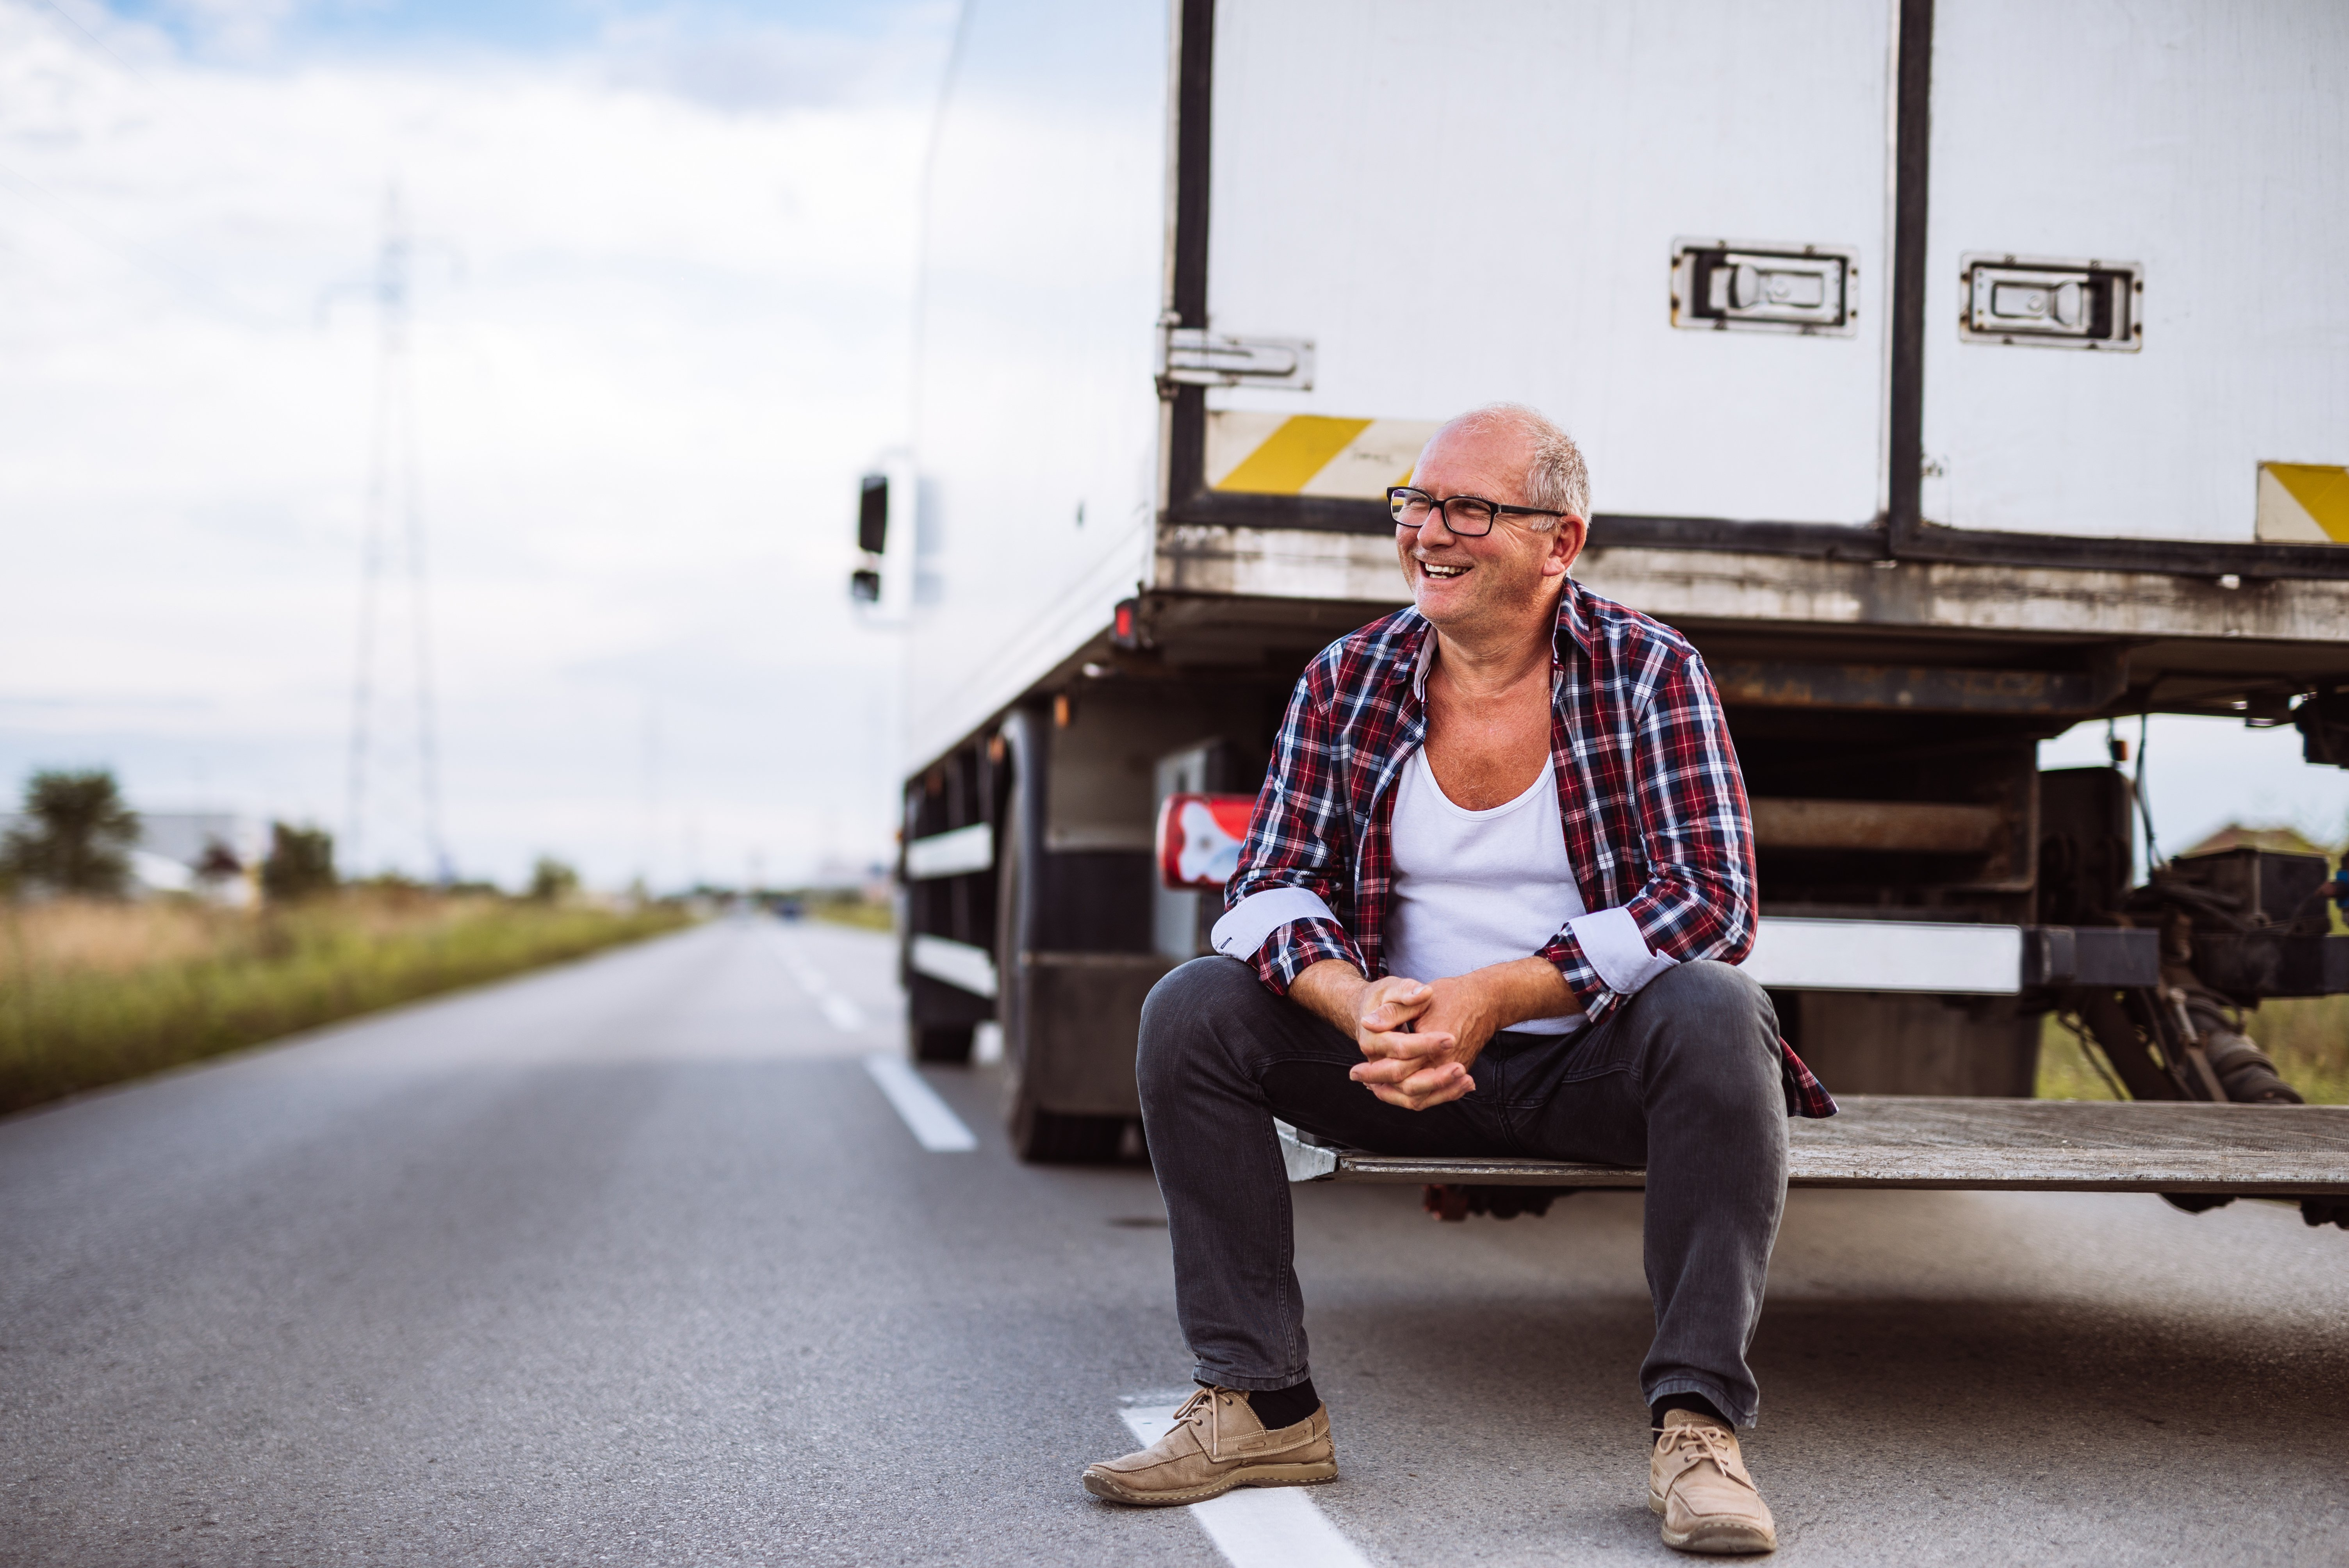 A truck driver sitting behind a white truck parked on the road, smiling.